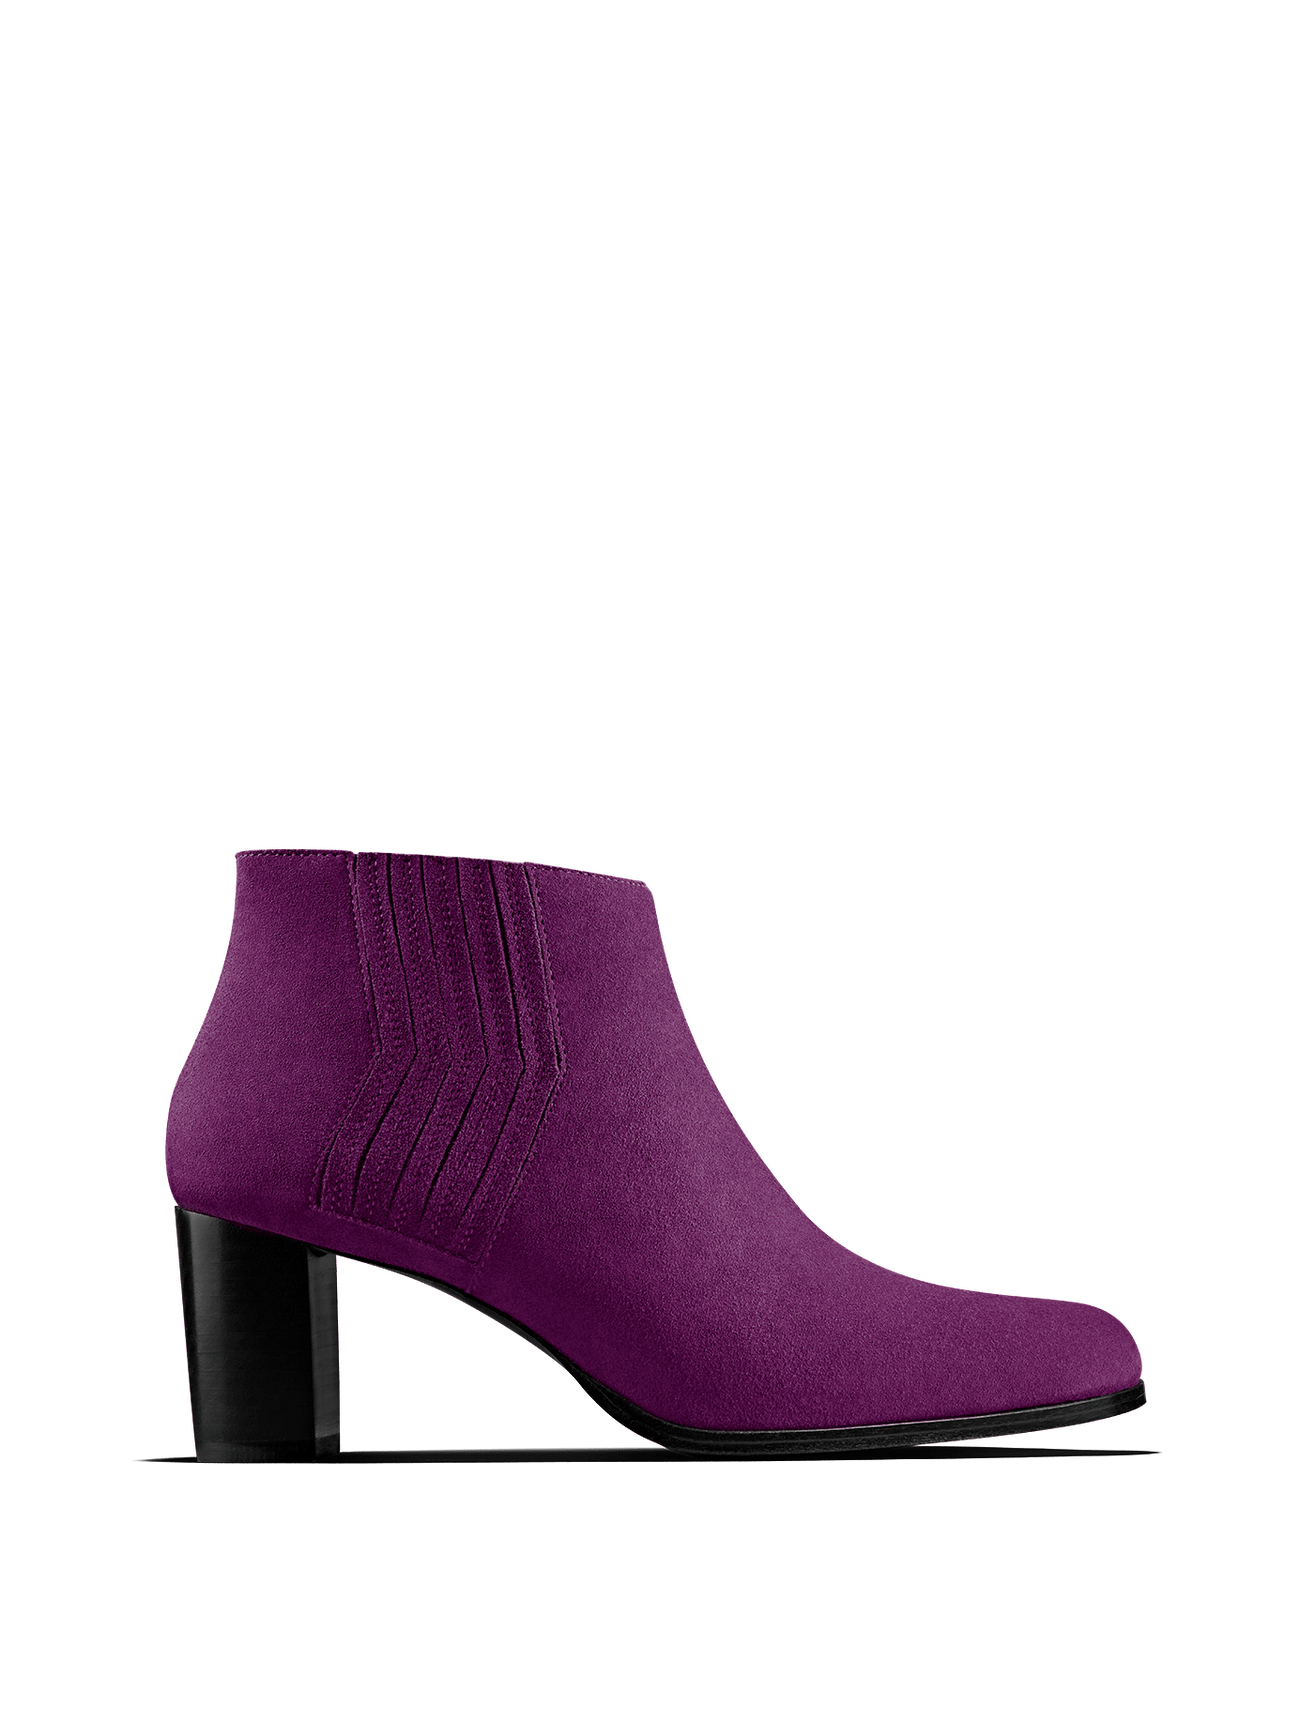 Miller in fuchsia purple suede, our statement ankle boot with zig-zag detail.